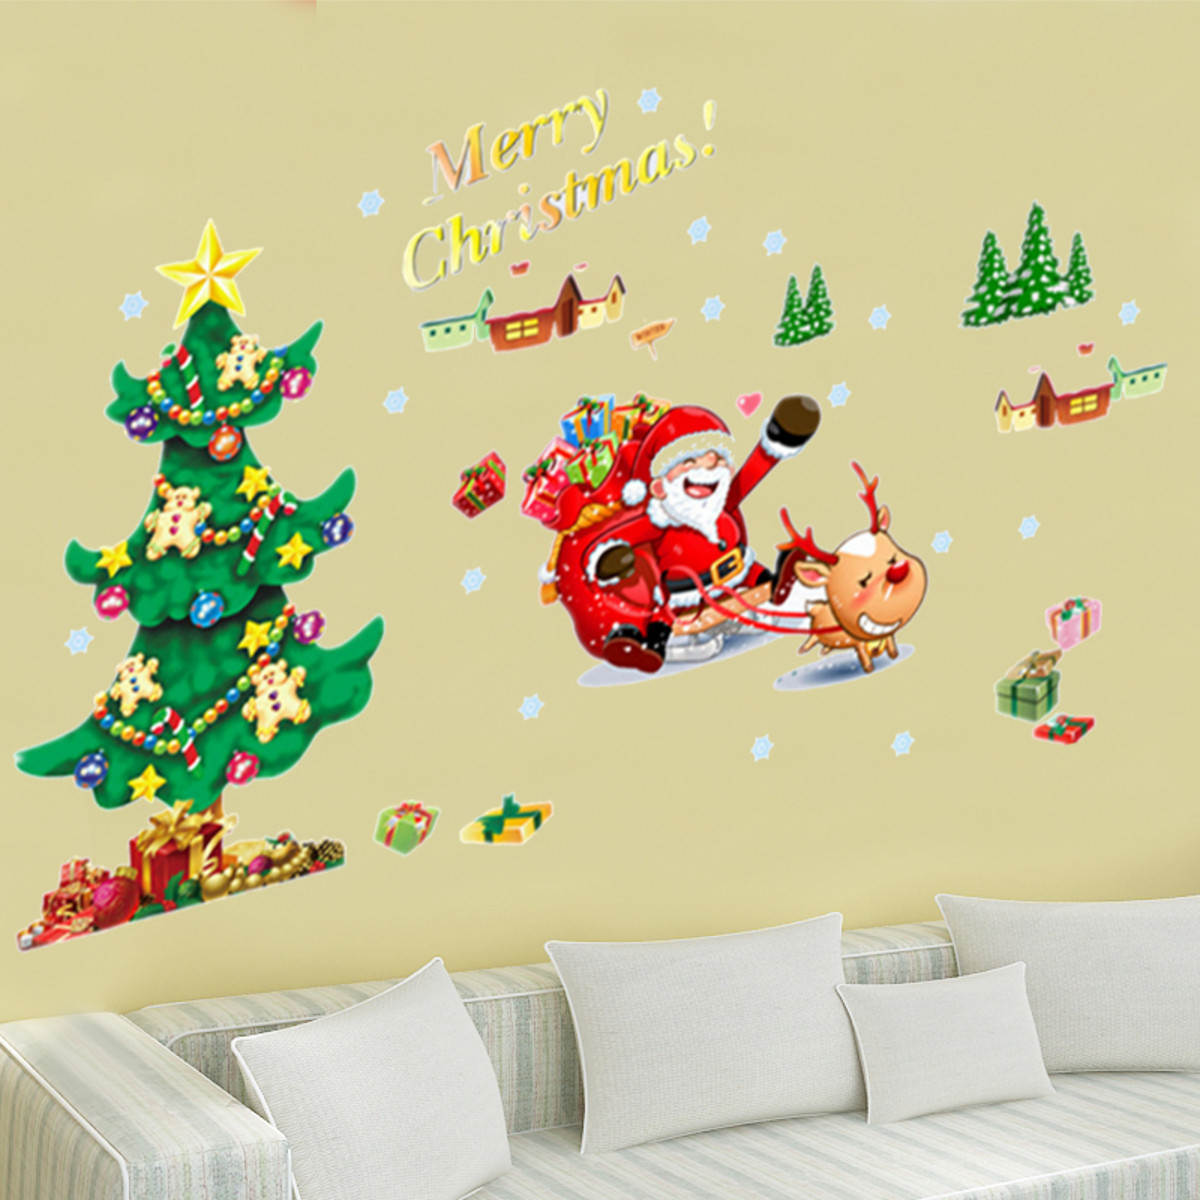 Amazing Merry Christmas Wall Decor Images - The Wall Art Decorations ...